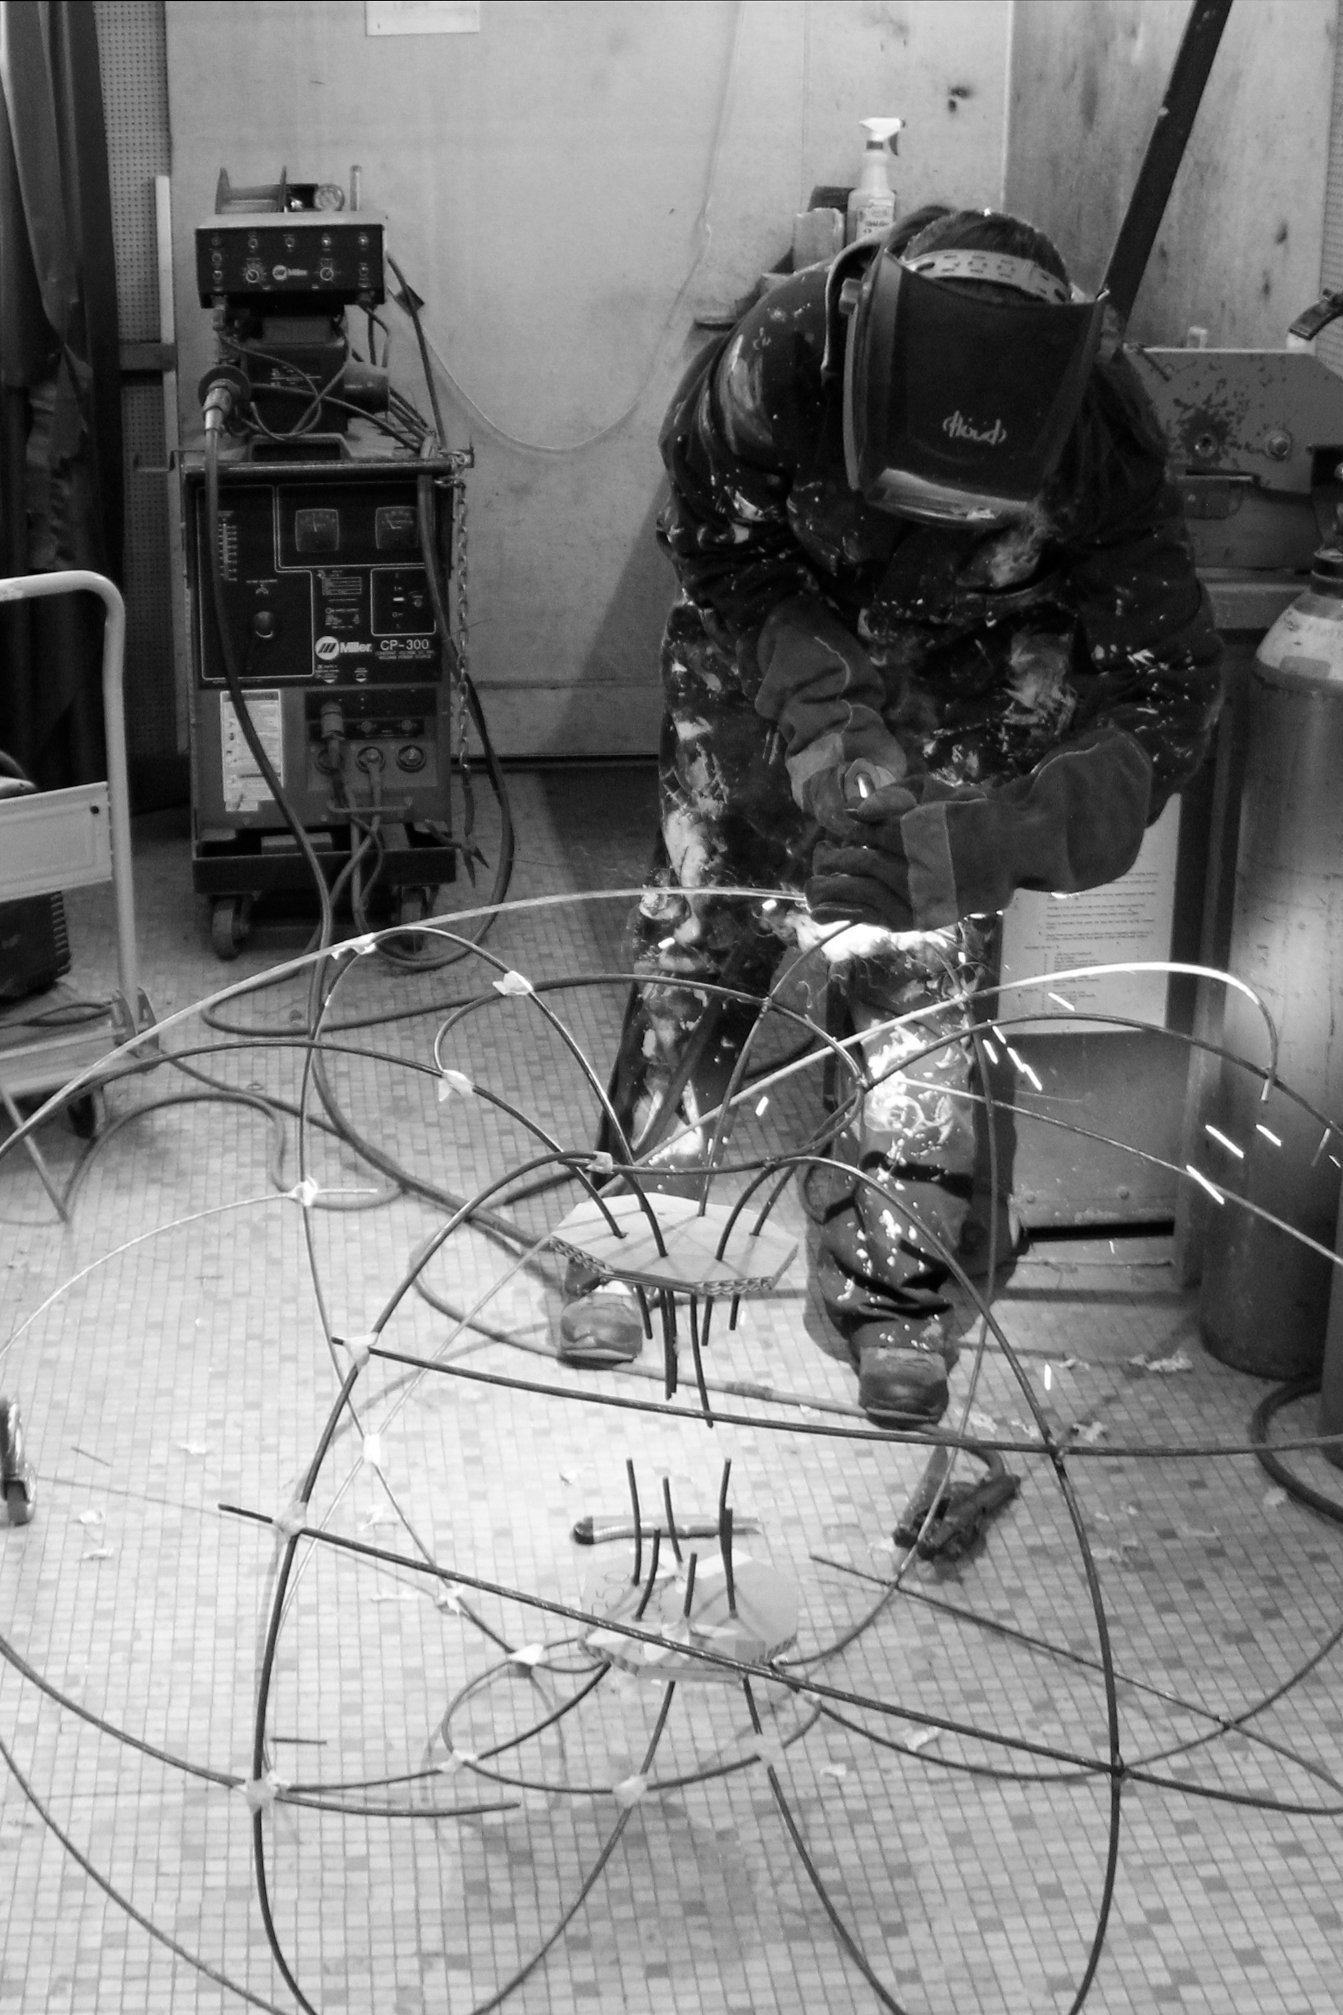 Welding of Endless Cycle